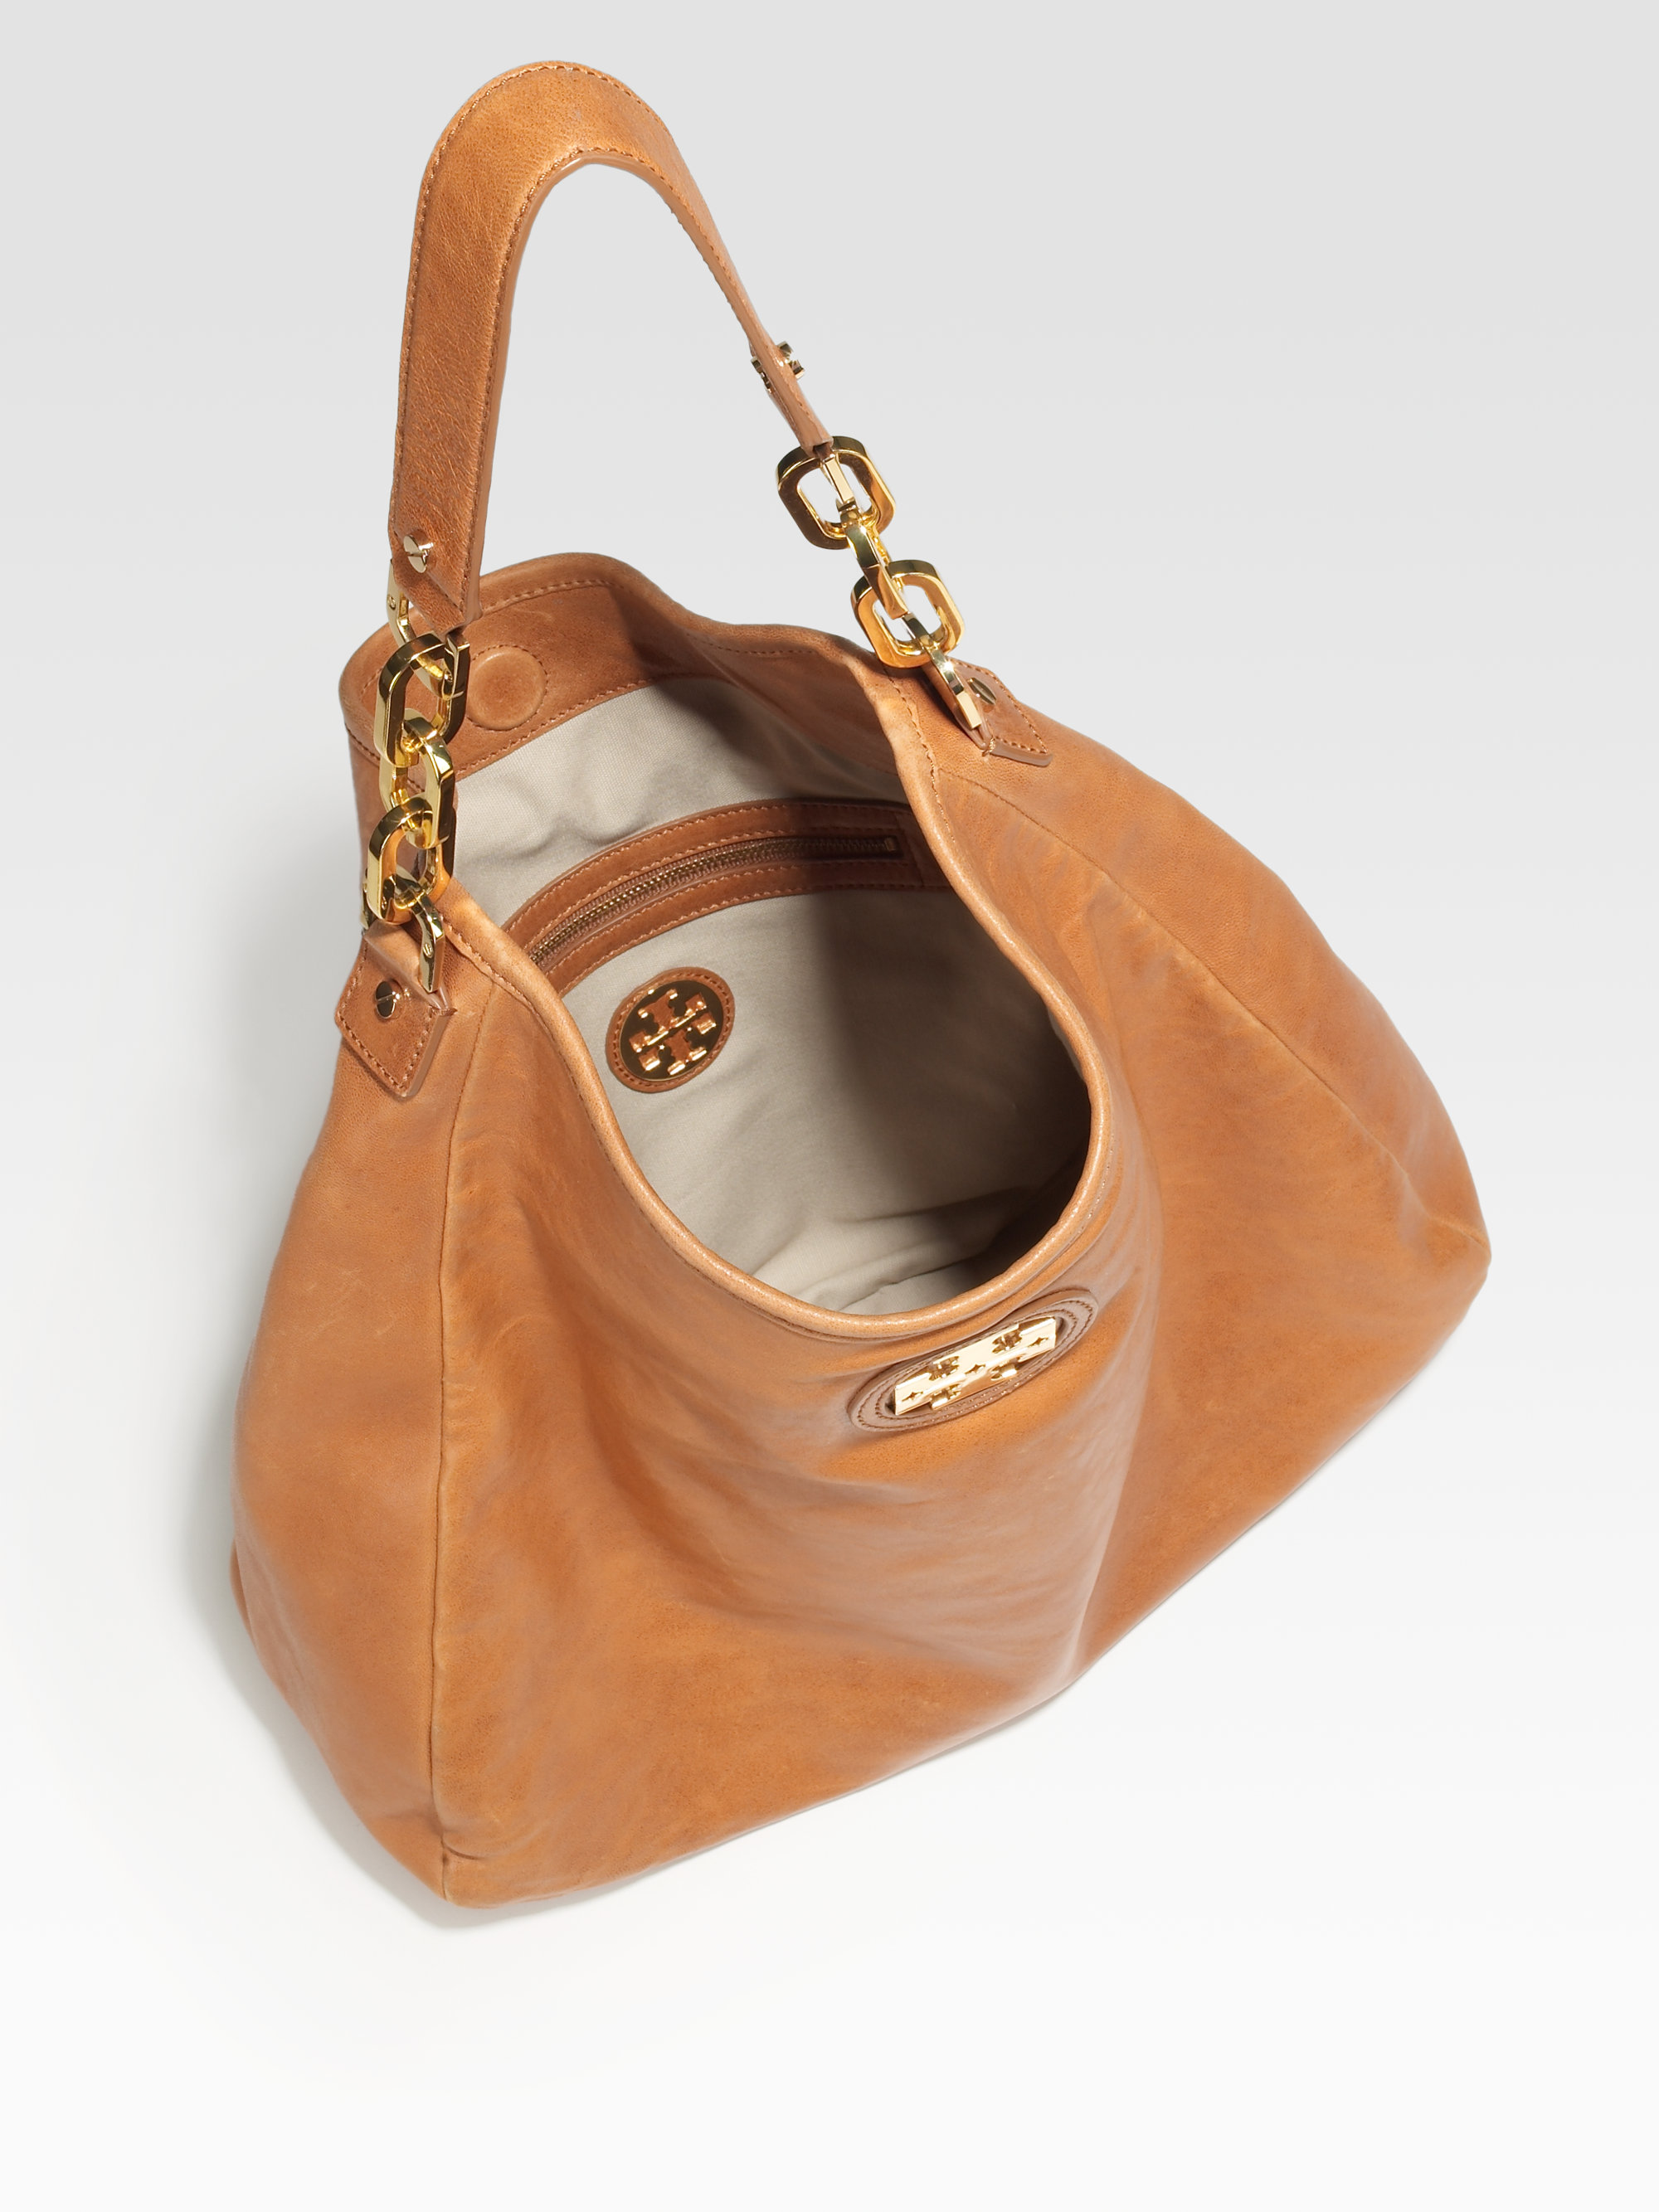 Tory burch City Hobo Bag in Brown | Lyst